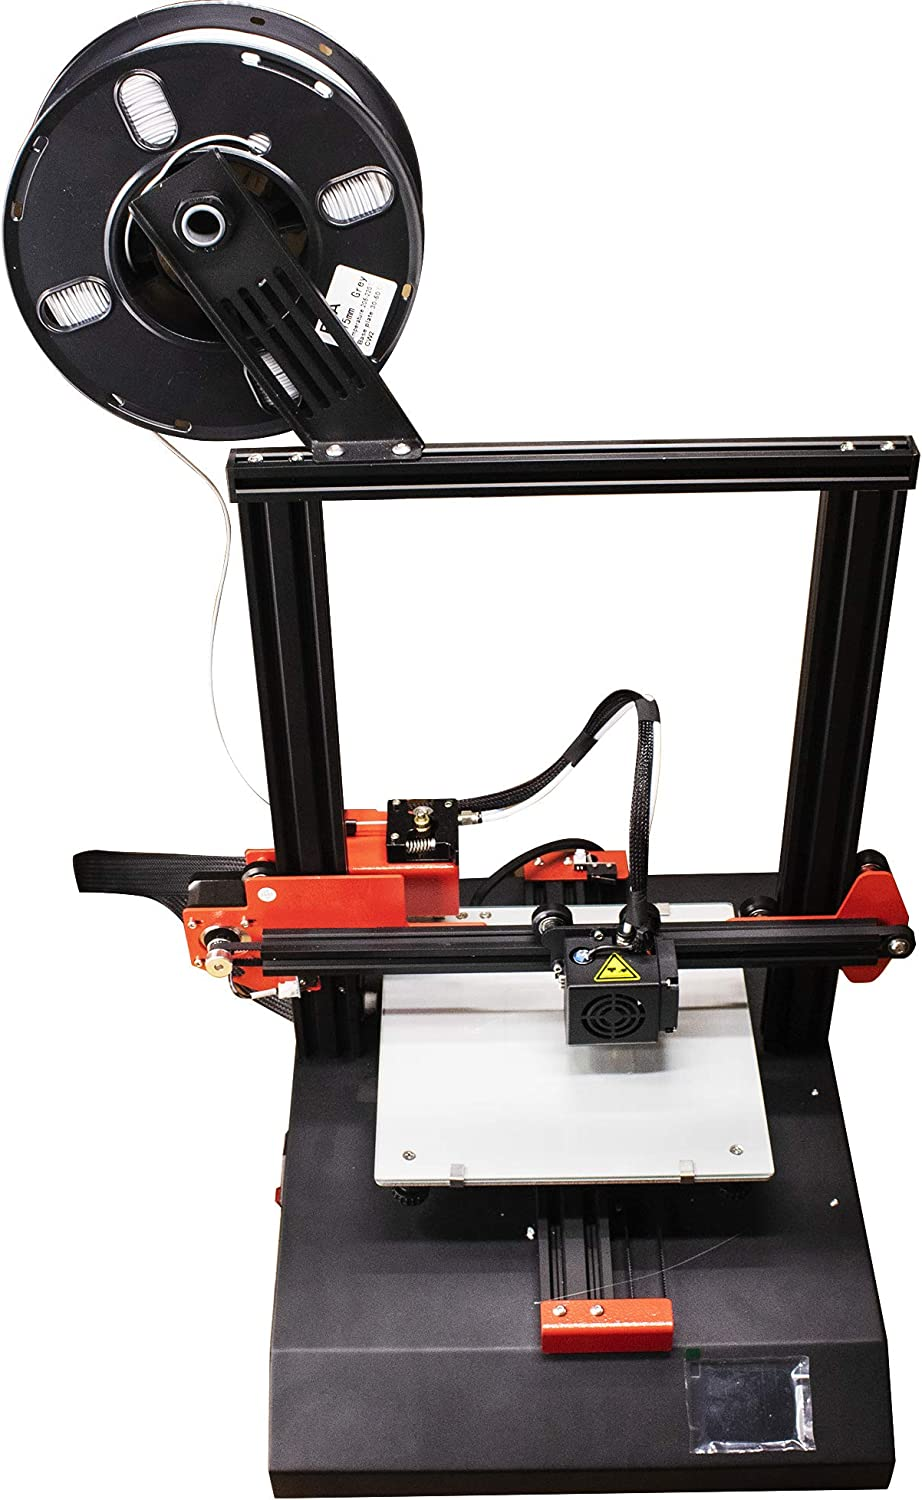 LAFVIN 3D Printer with Automatic Memory,Dual extruder Design Size 100x80x120mm